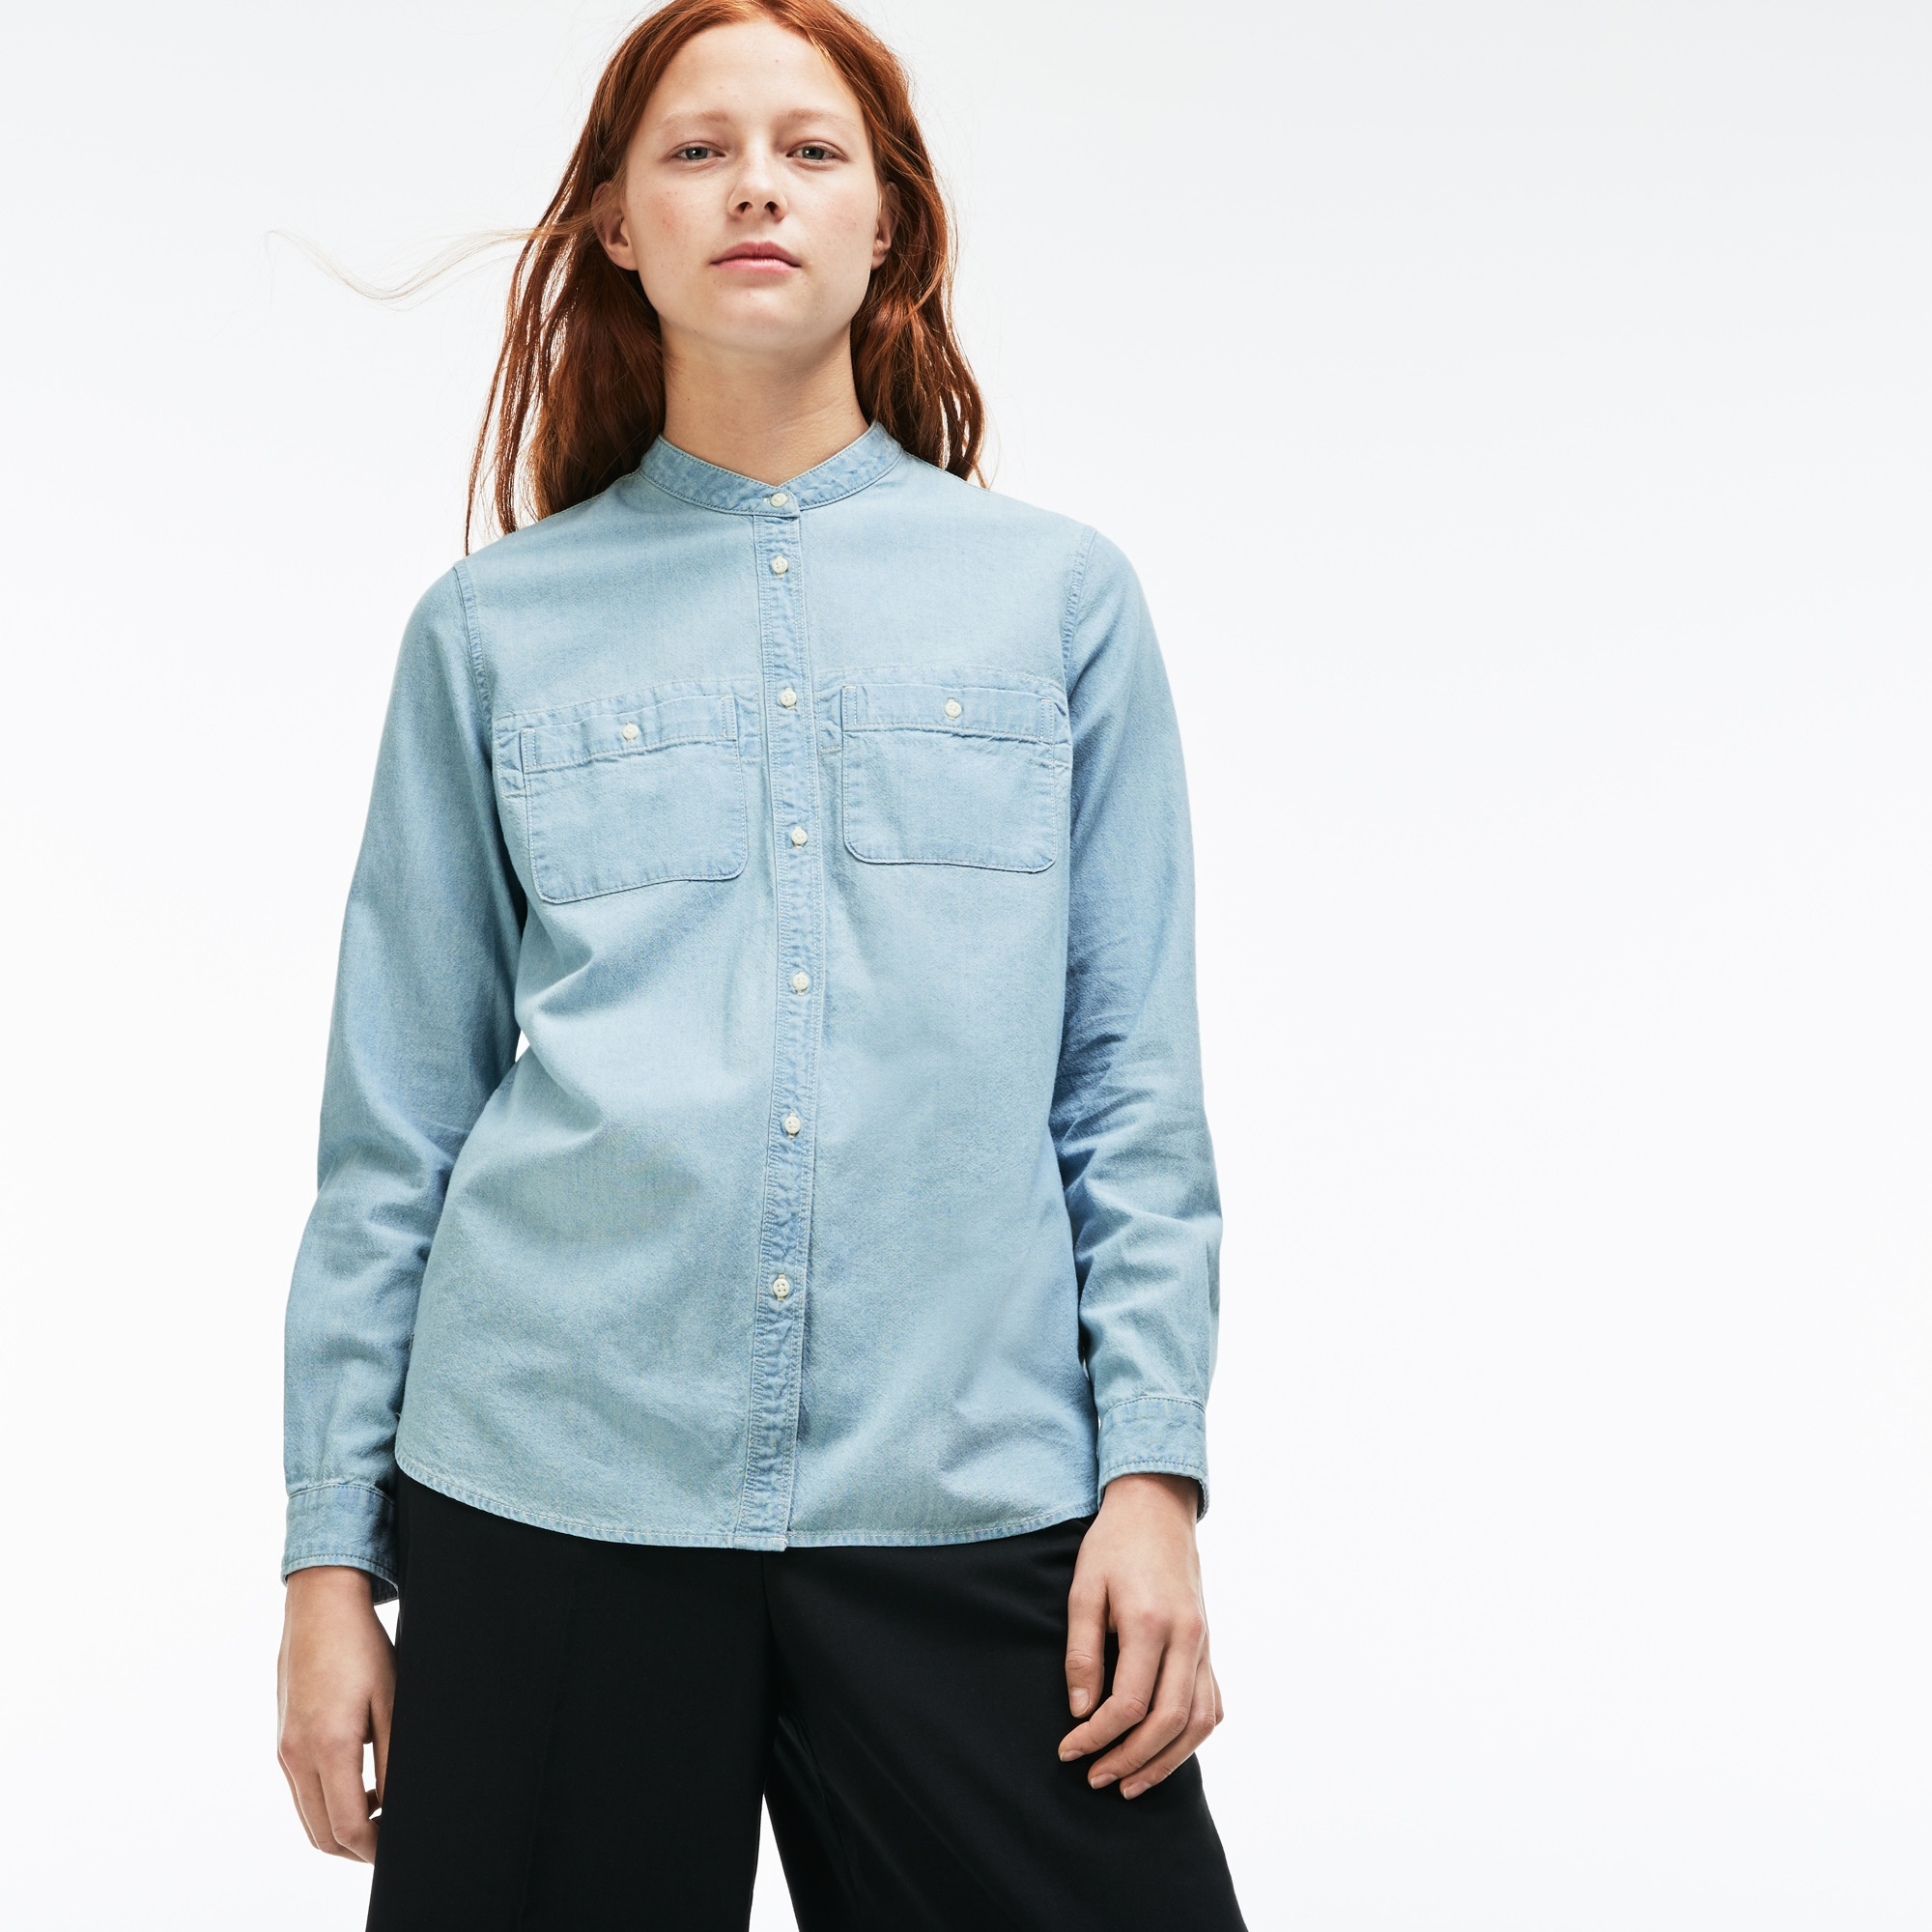 Lacoste LIVE-shirt dames losse pasvorm chambray